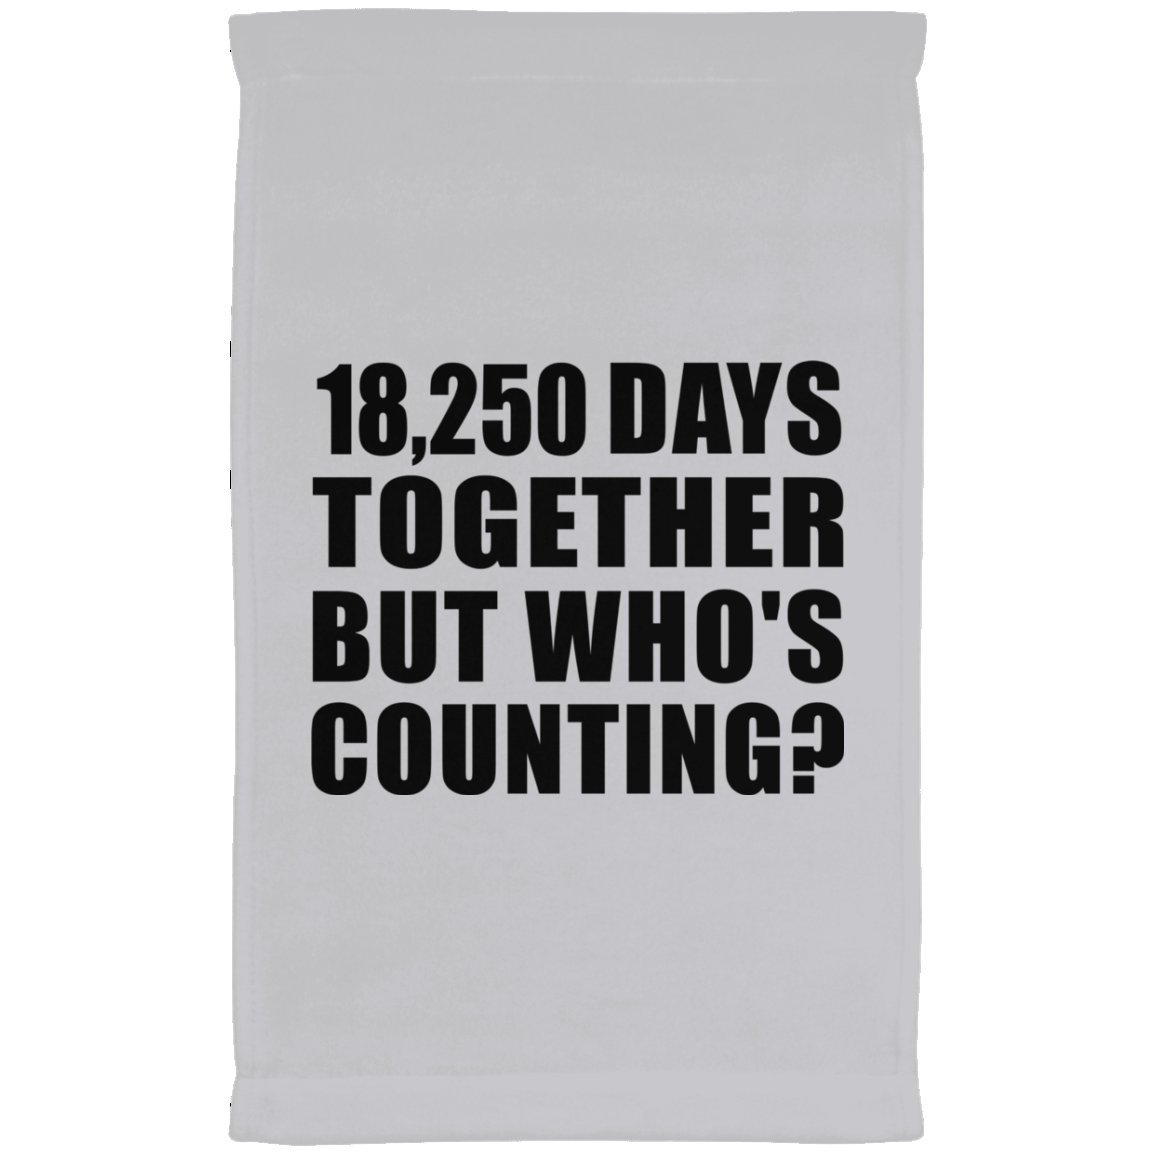 50th Anniversary 18,250 Days Together But Who's Counting - Kitchen Towel, Microfiber Velour Towel, Best Gift for Wedding, Dating, Engagement Anniversary by Husband, Wife, Boyfriend, Girlfriend